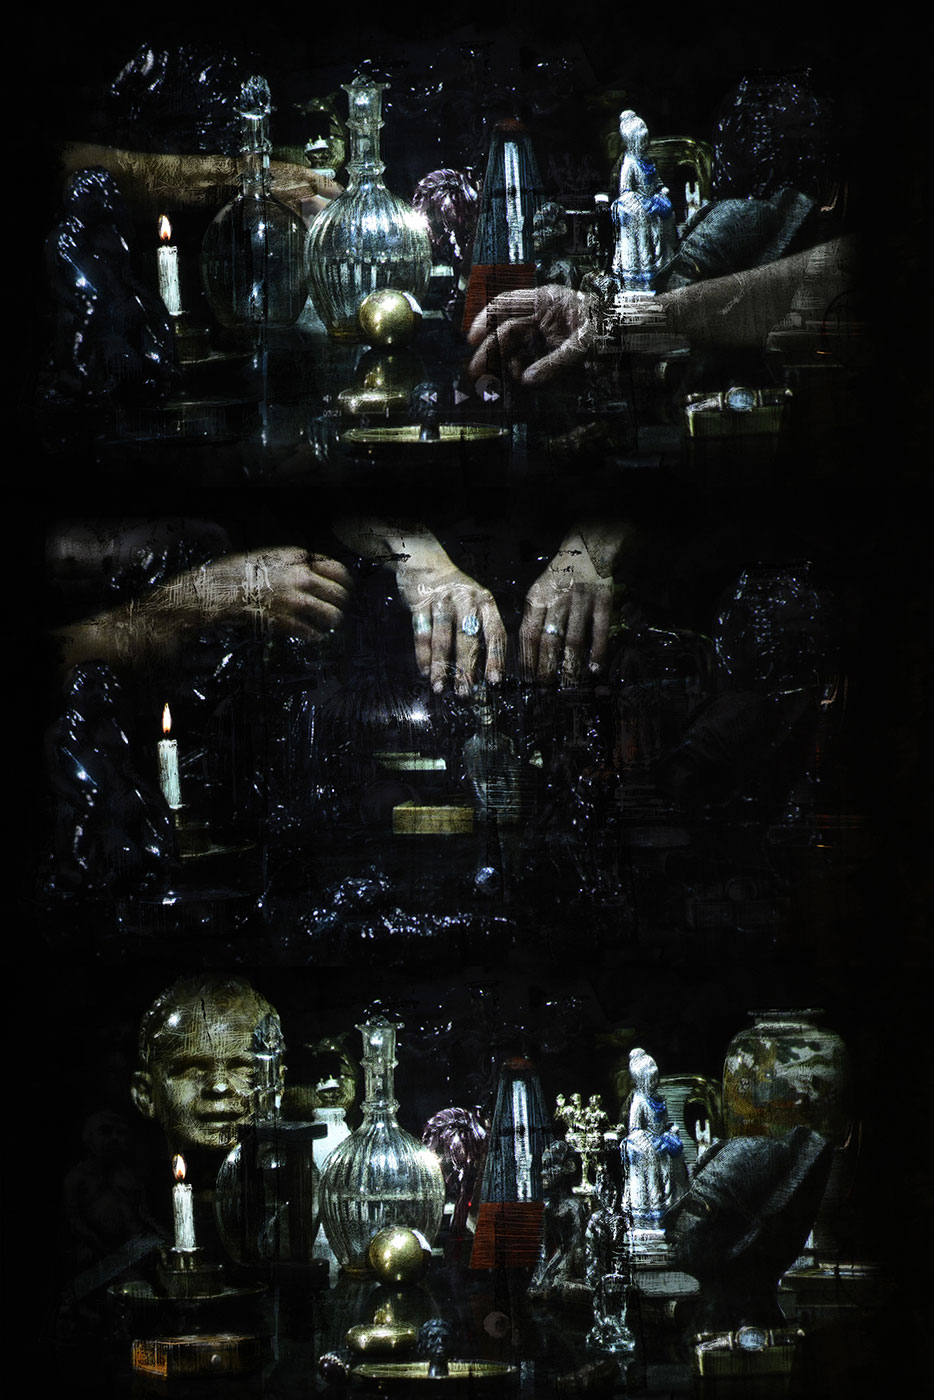 Gonzalo Borondo, Matière Noire. Act III, Interpretation. Marche, collaboration with BRBR films. Hologram in antique shop © Laurent Carte.